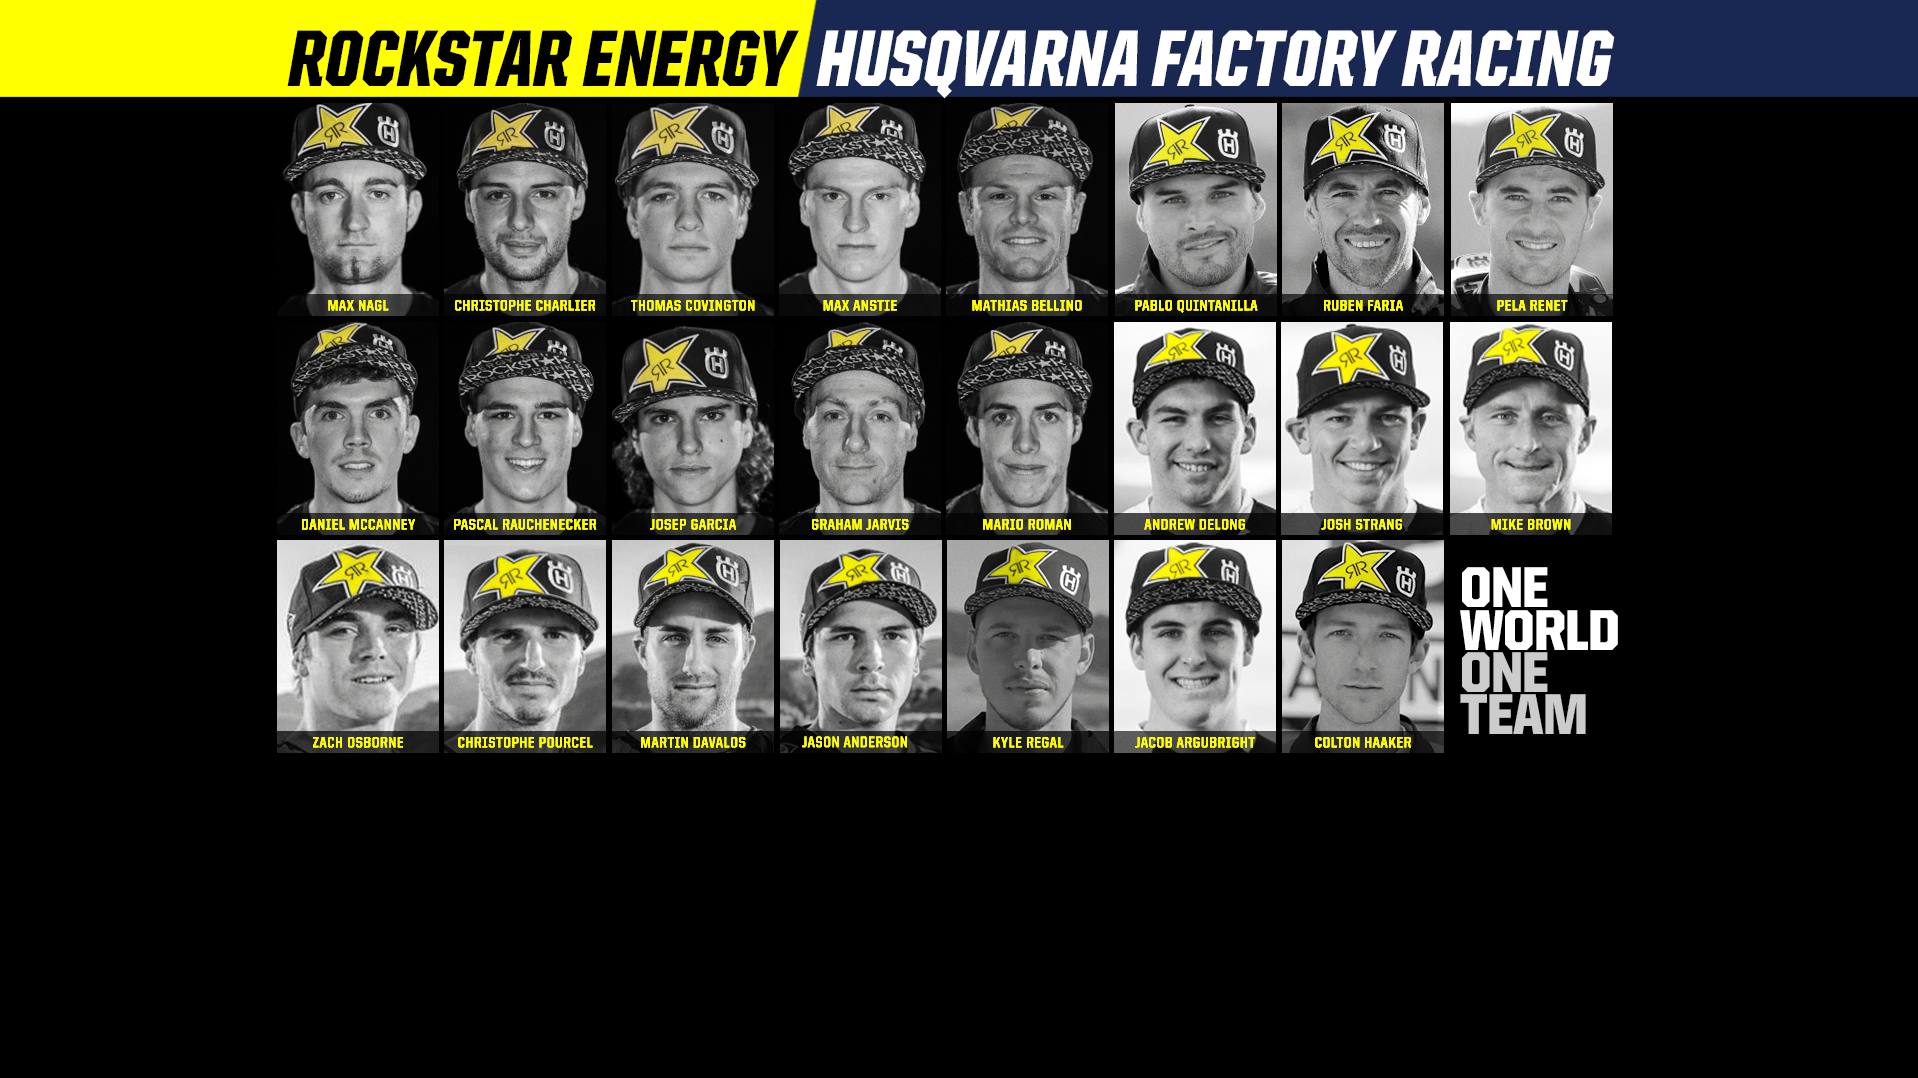 Rockstar Energy Husqvarna Factory Racing Global Partnership 2016